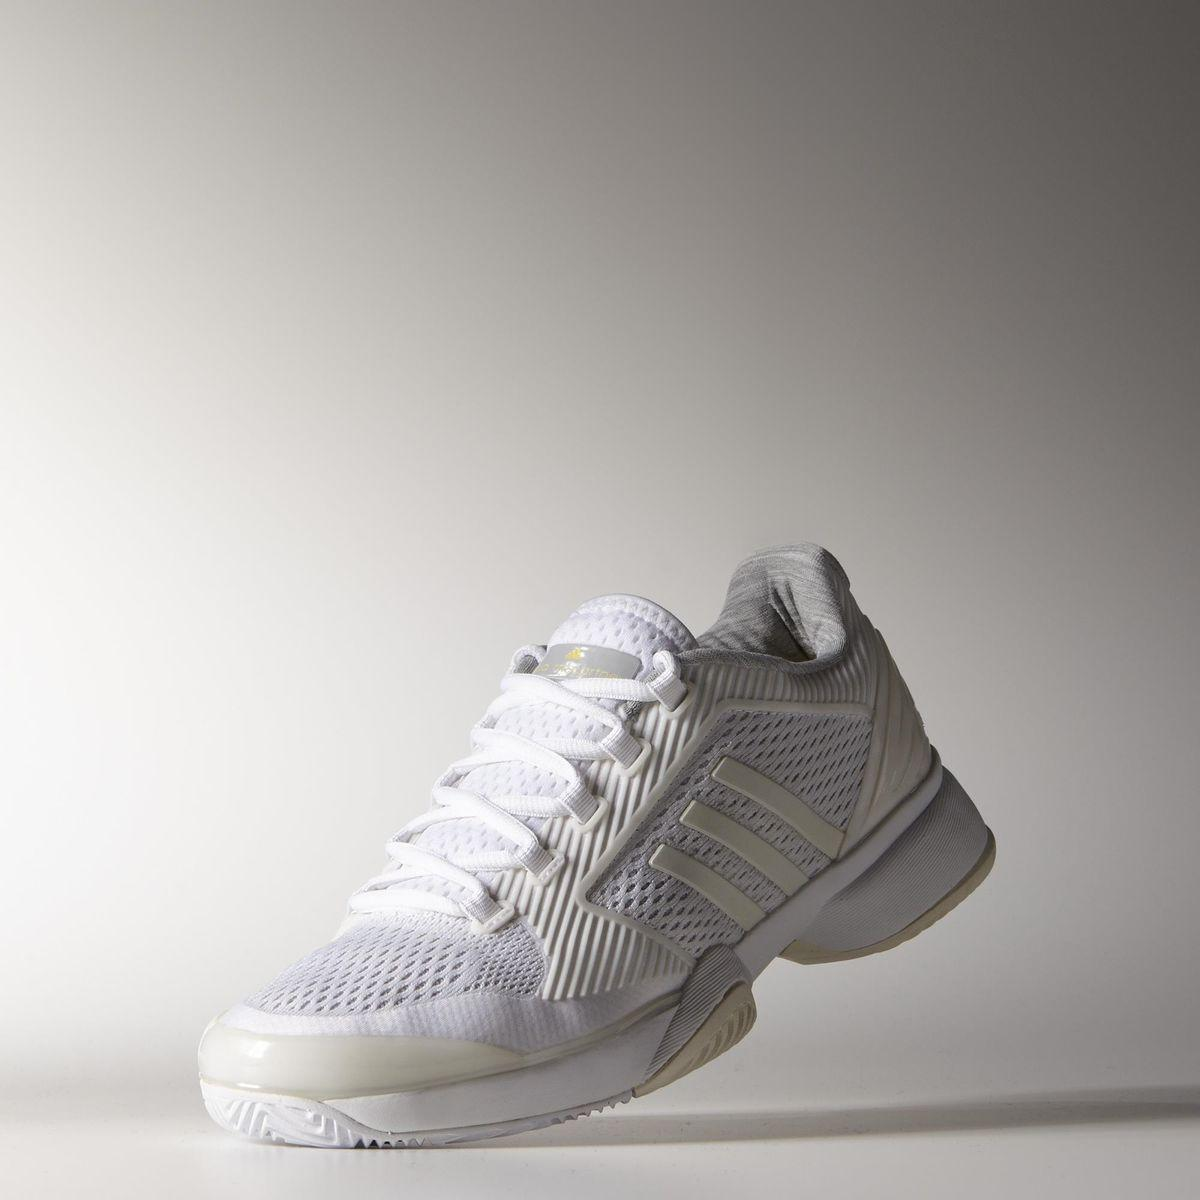 adidas womens stella mccartney barrikade 2015 tennisschuhe white